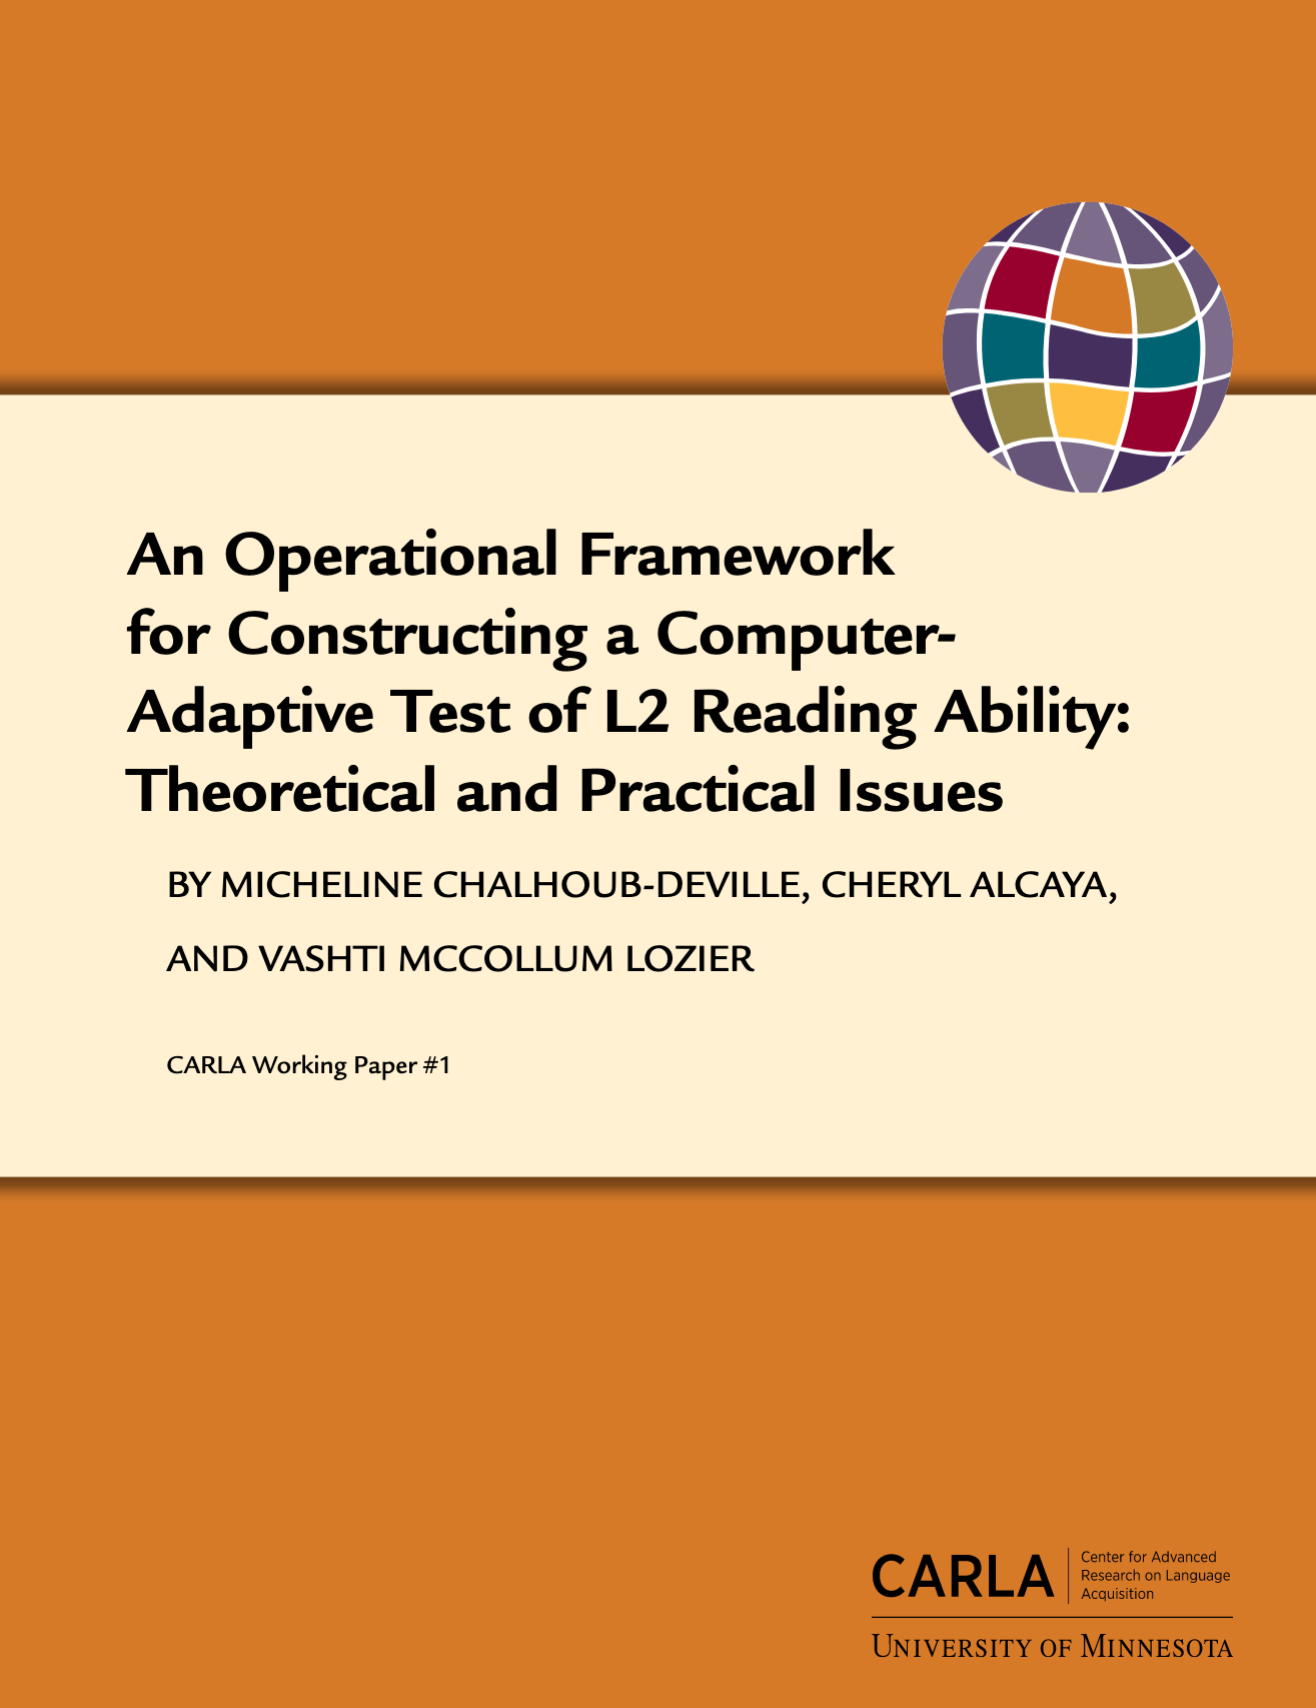 An Operational Framework for Constructing a computer-Adaptive Test of L2 Reading Ability